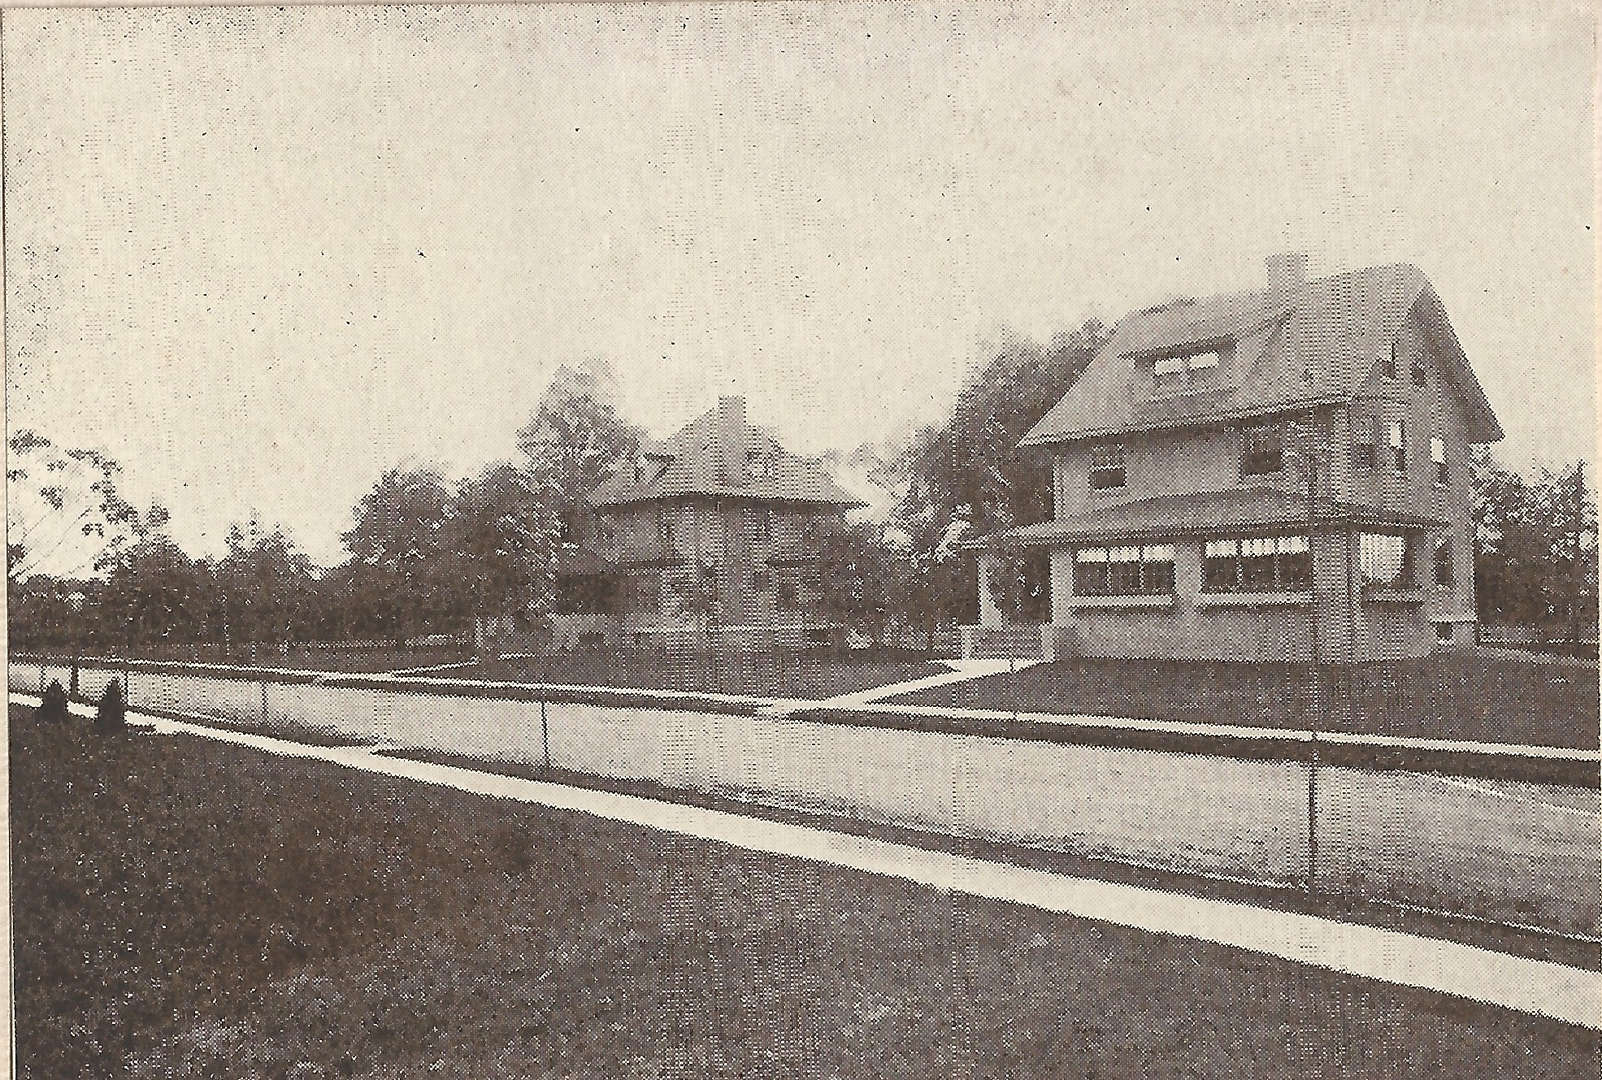 Houses at 115 and 111 Edgemont Road, circa 1908